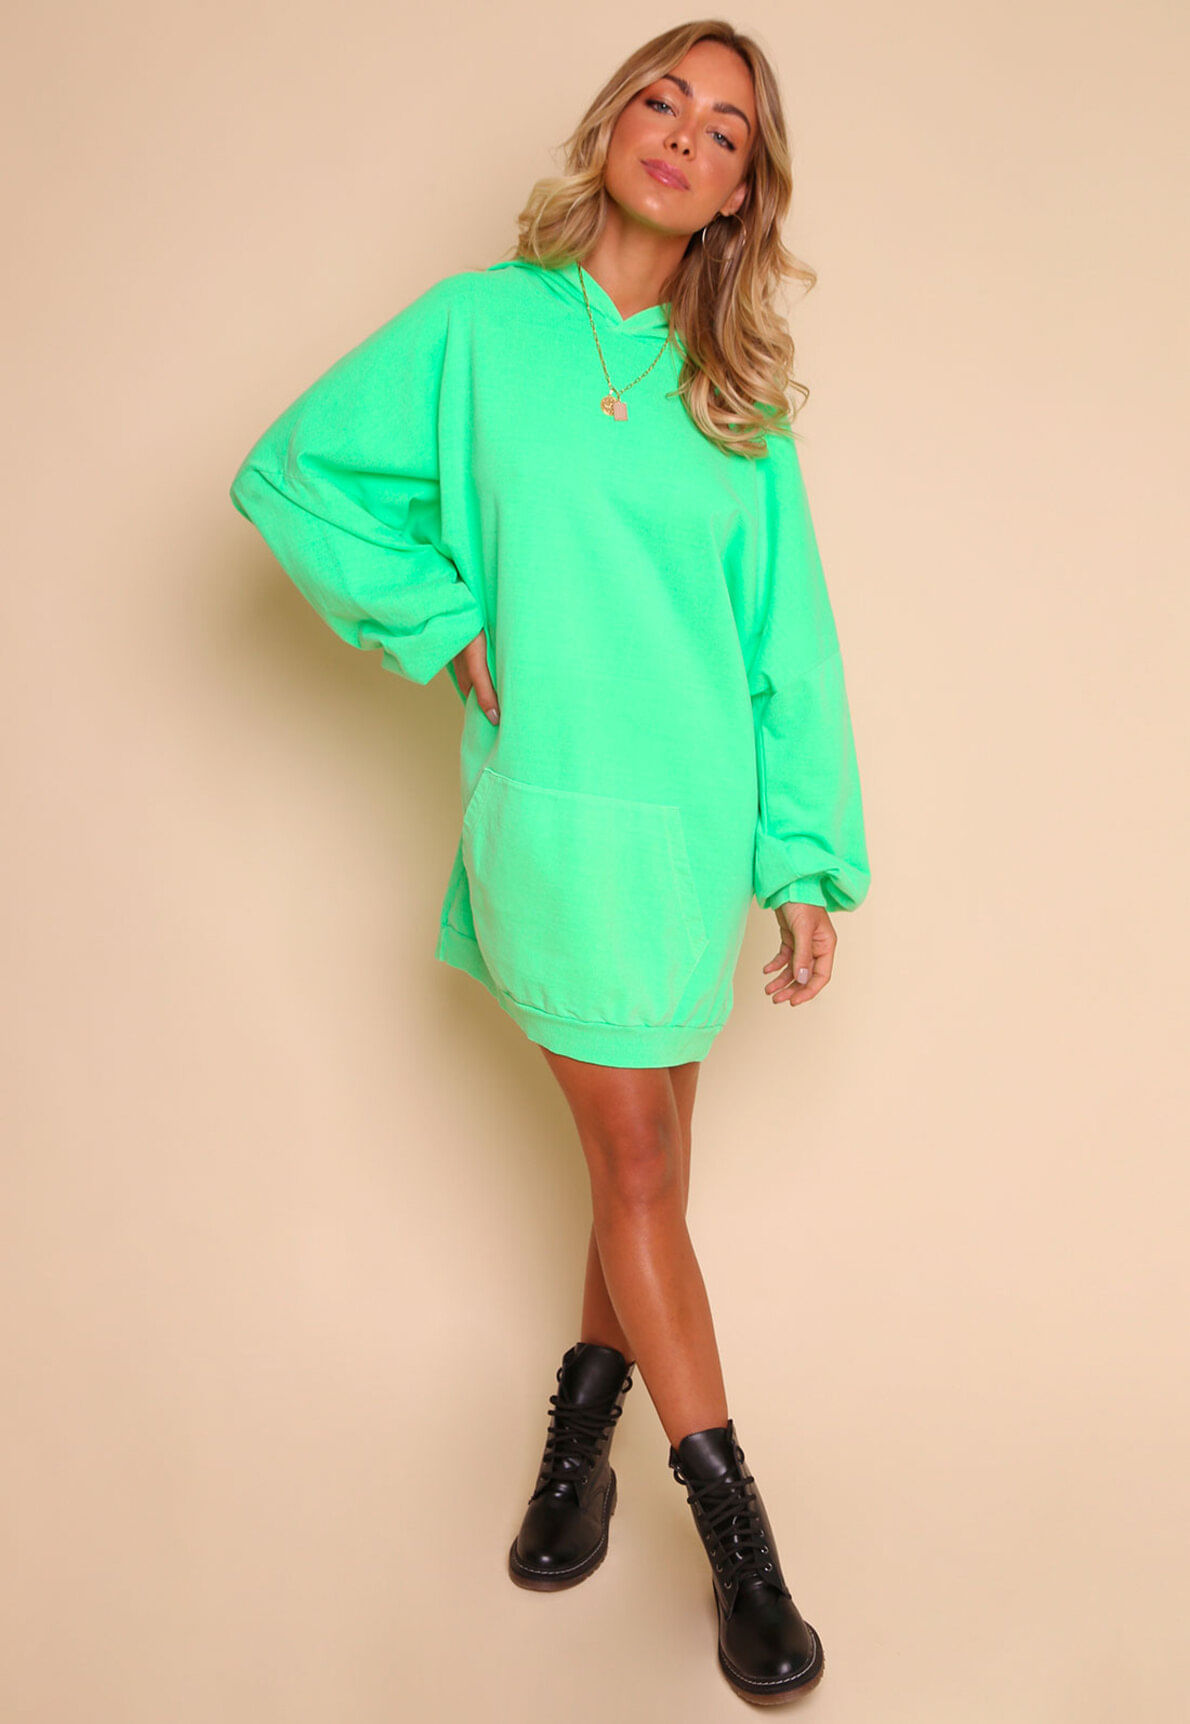 30442-moletom-oversized-neon-take-me-out-mundo-lolita-01